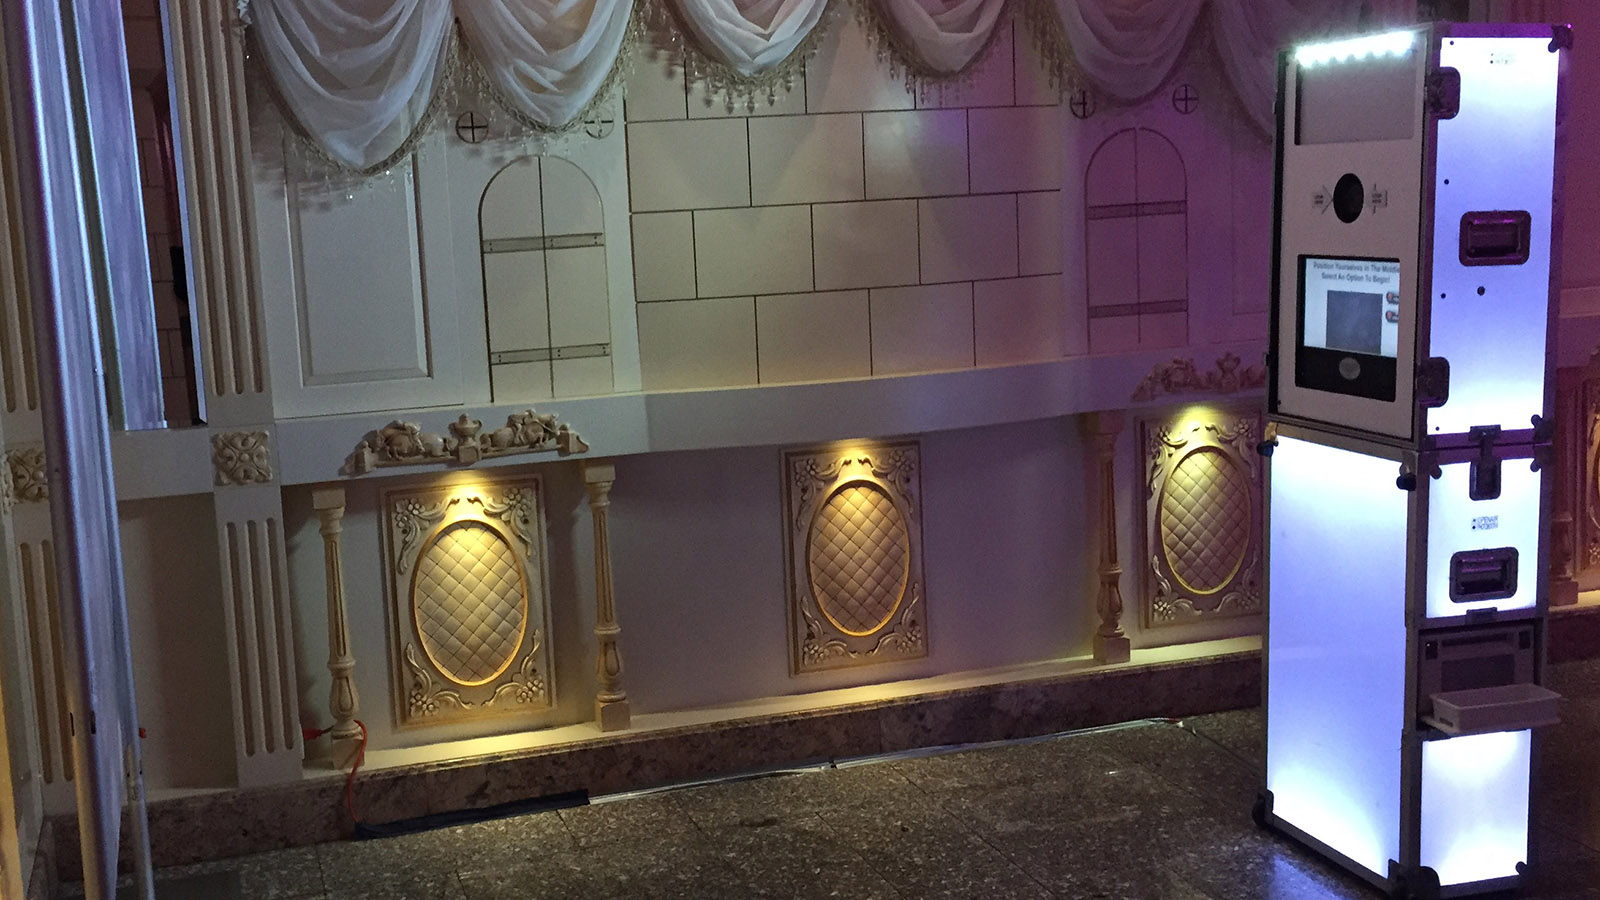 led-open-air-photo-booth-rental-installation-with-backdrop-16x9-by-212-photo-booth